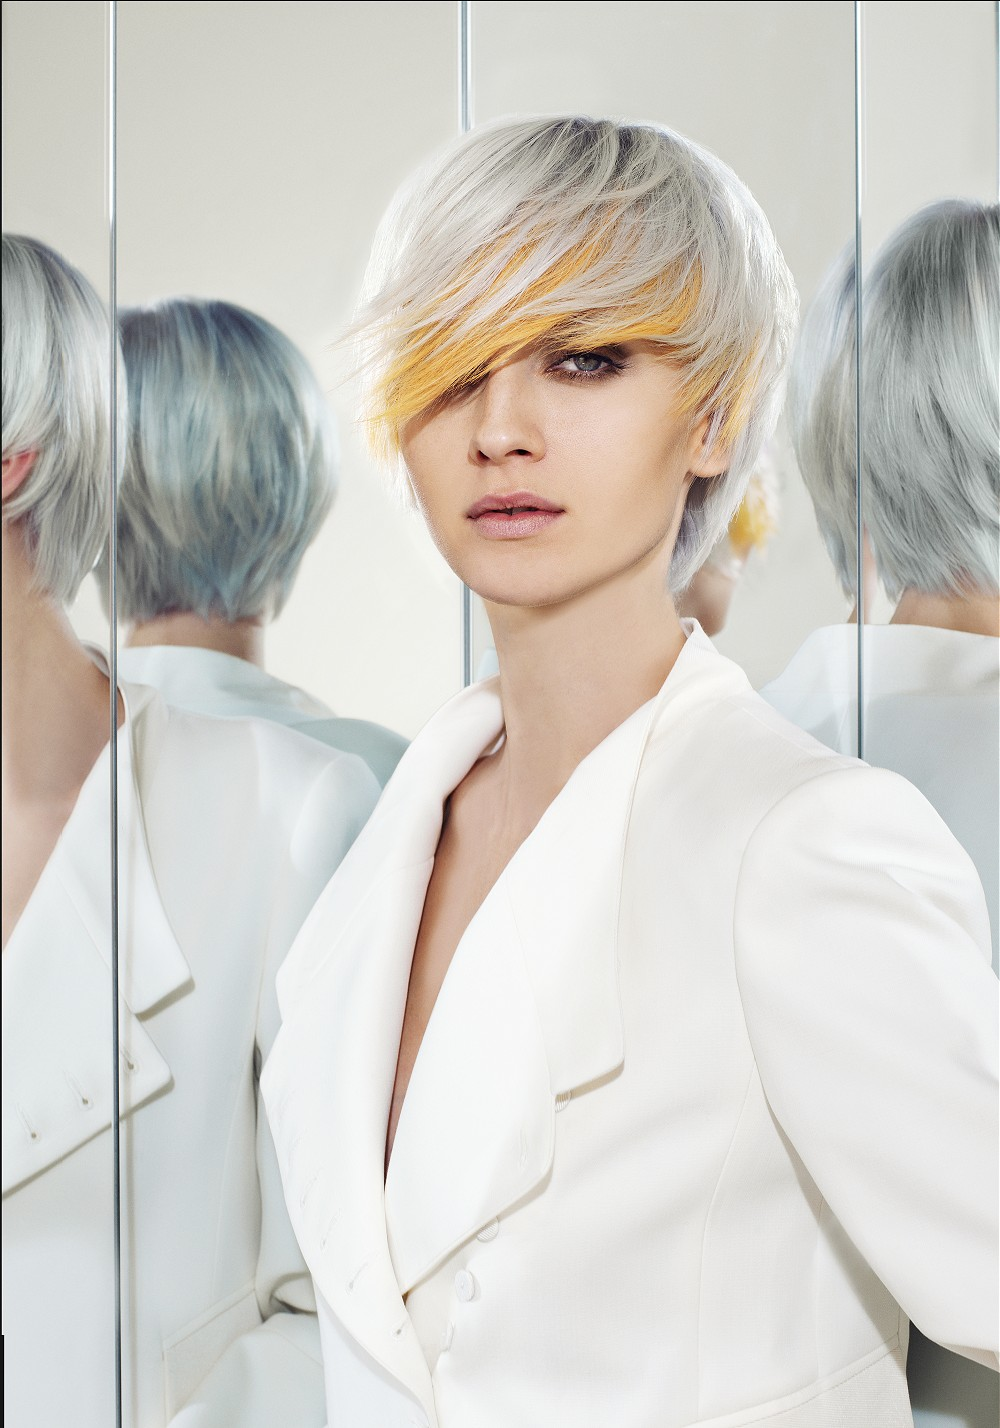 50 hairstyles for short hair for spring and summer 2016 | HAIR ...